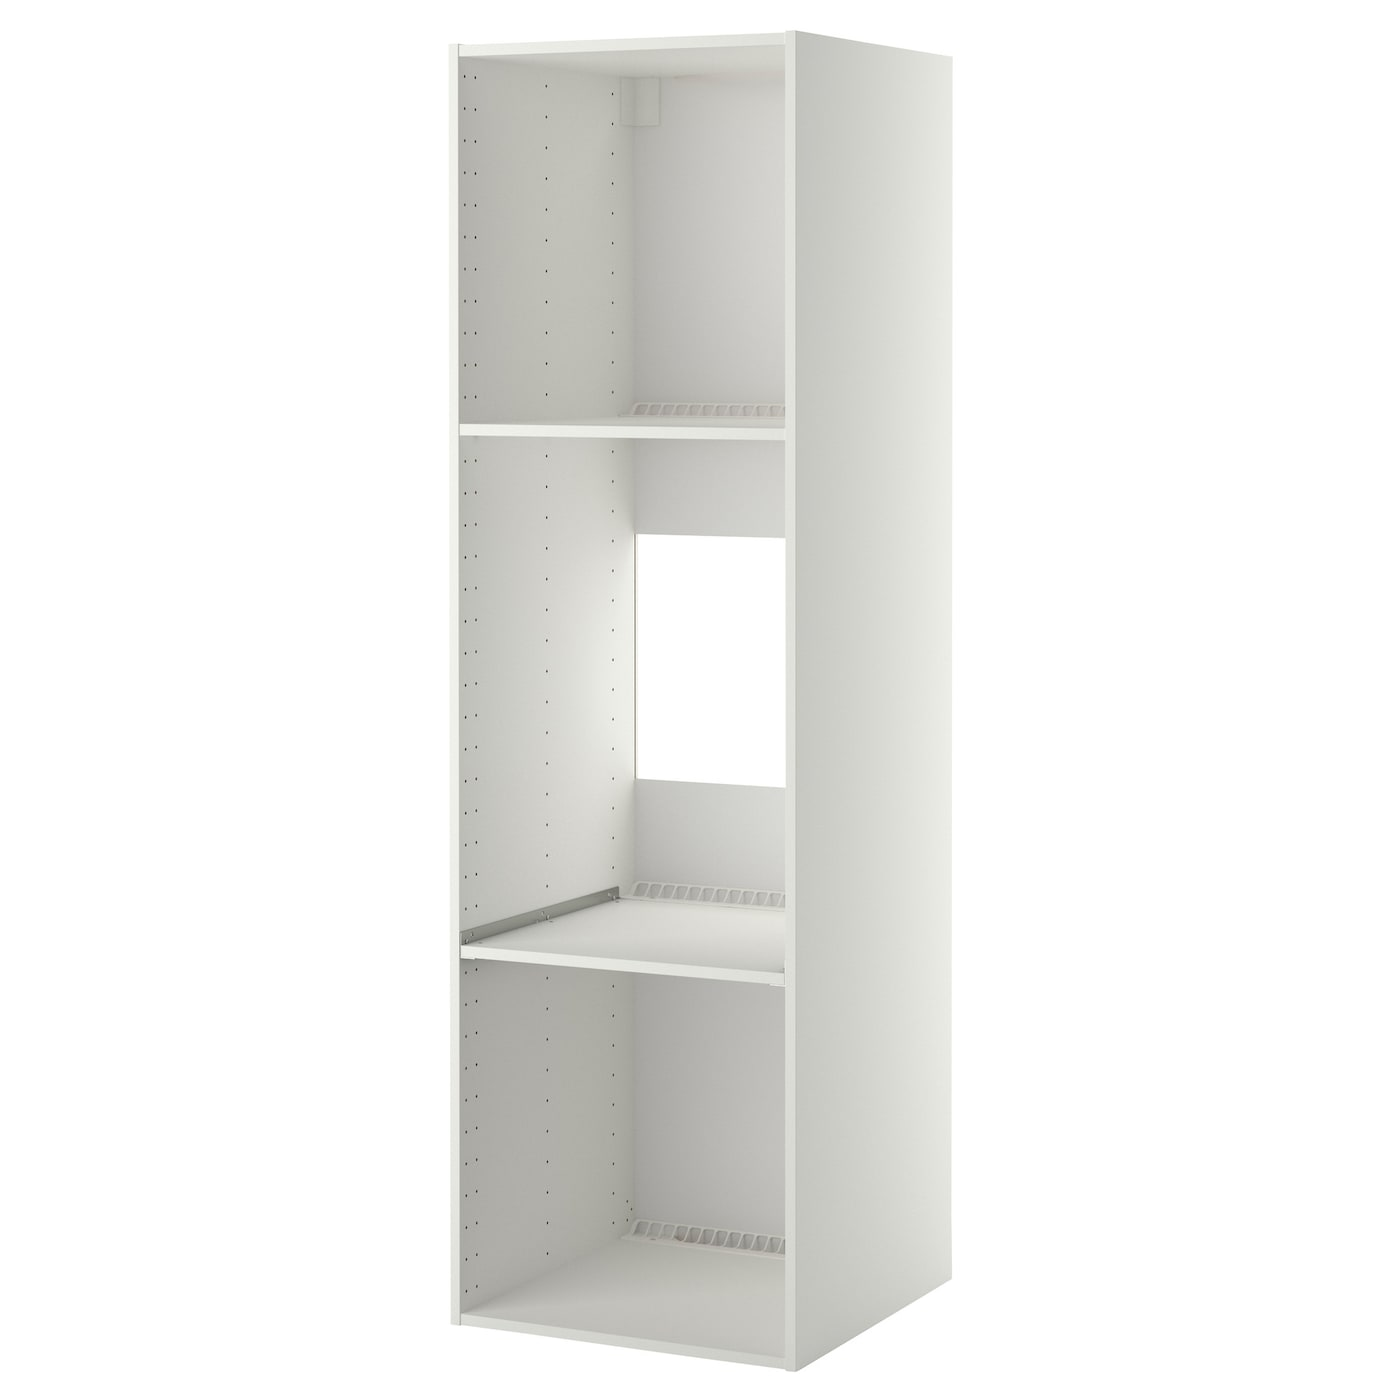 Metod high cabinet frame for fridge oven white 60x60x200 - Meuble pour lave vaisselle ikea ...